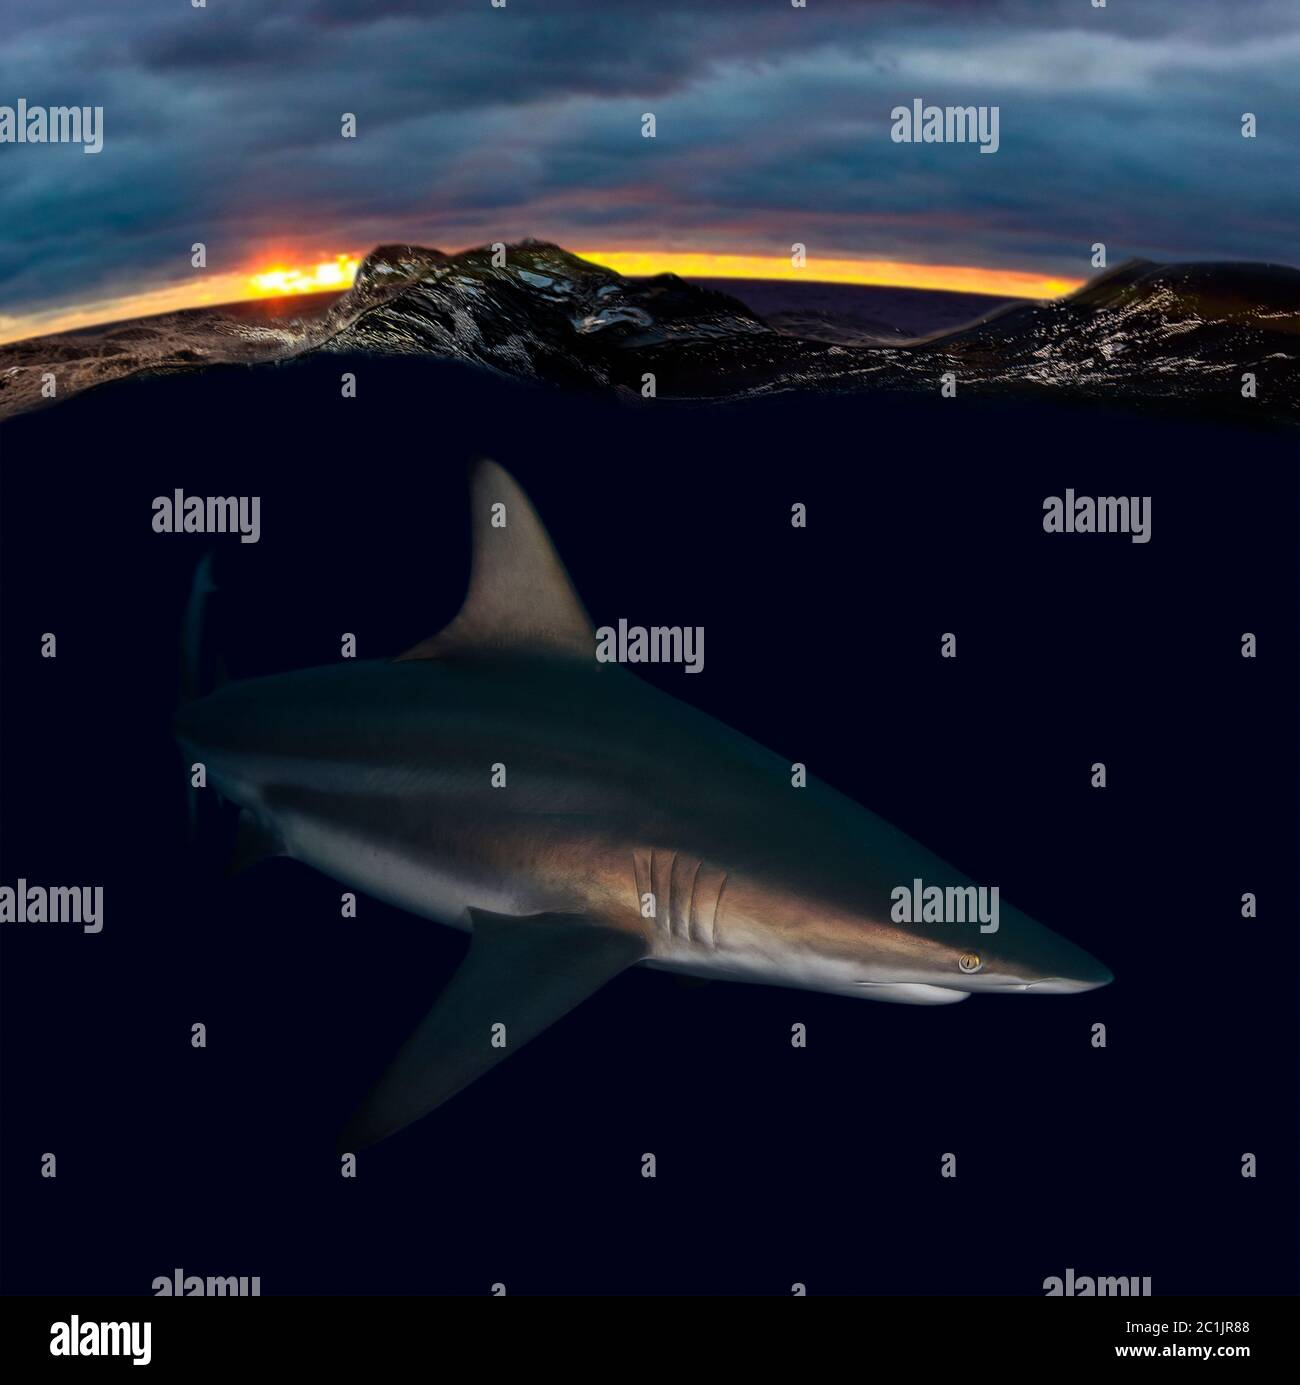 Blacktip shark, Carcharhinus limbatus, at sunset. The blacktip shark has a worldwide distribution in tropical and subtropical waters. Is an Stock Photo